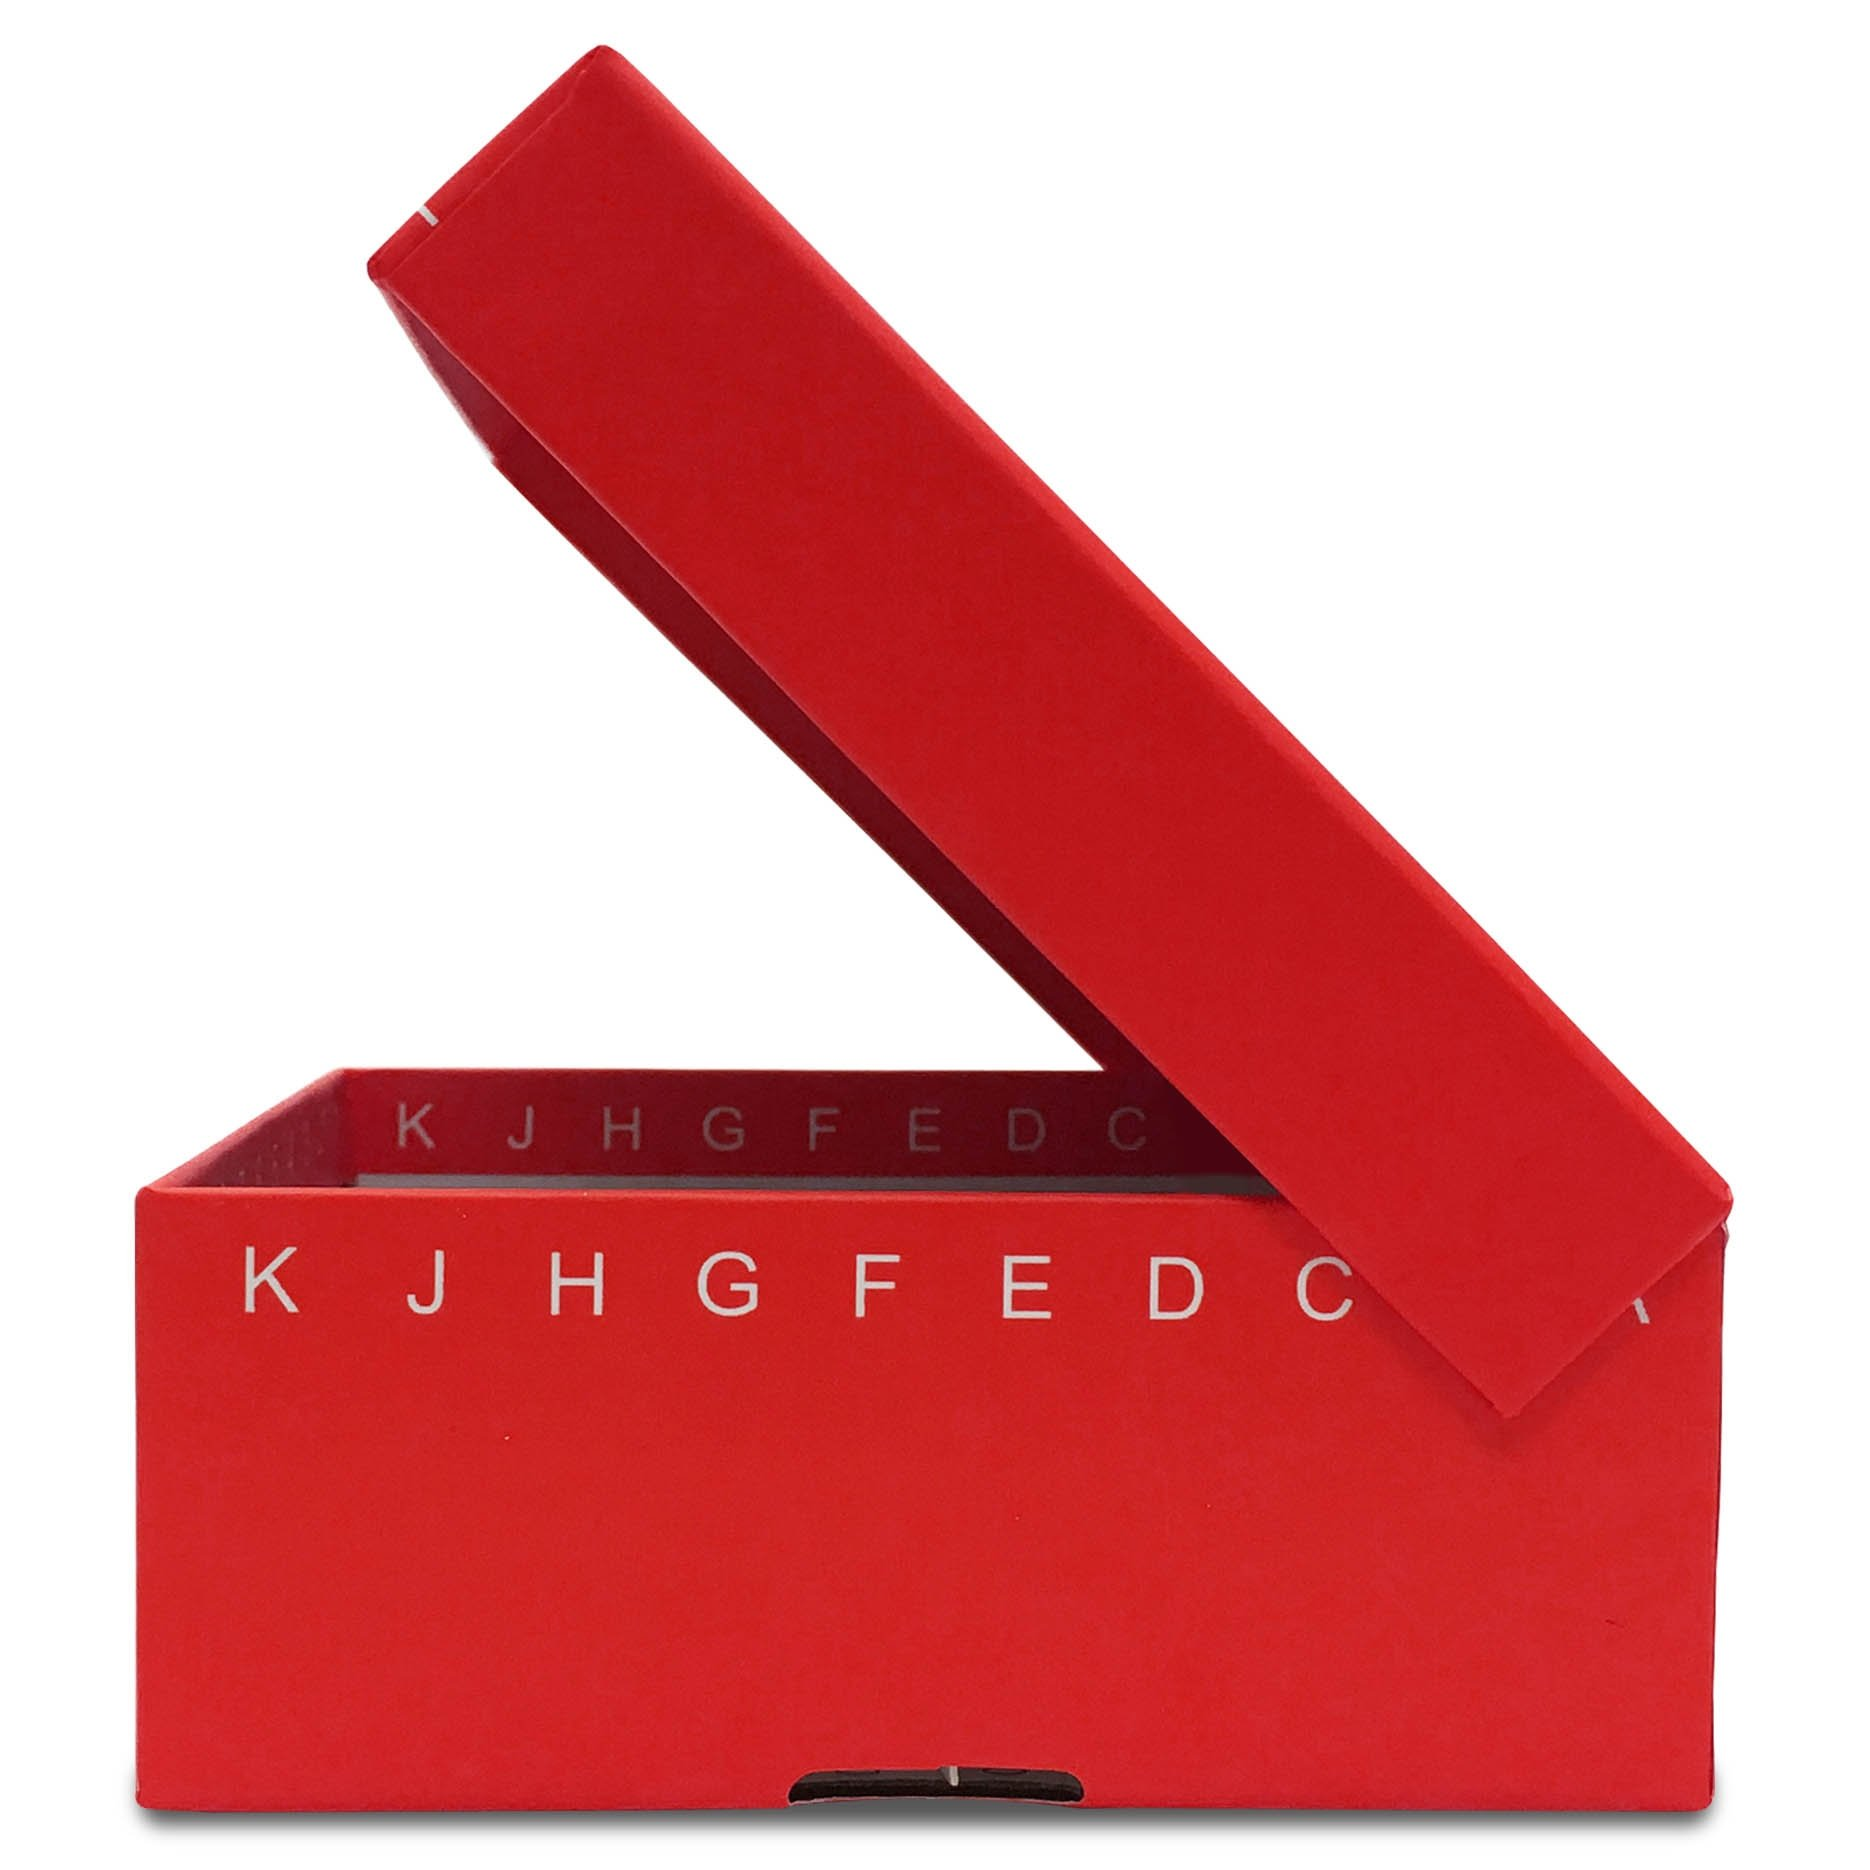 FlipTop Cardboard Freezer Box 100-Place with Attached Hinged Lid - Red (Case of 50)